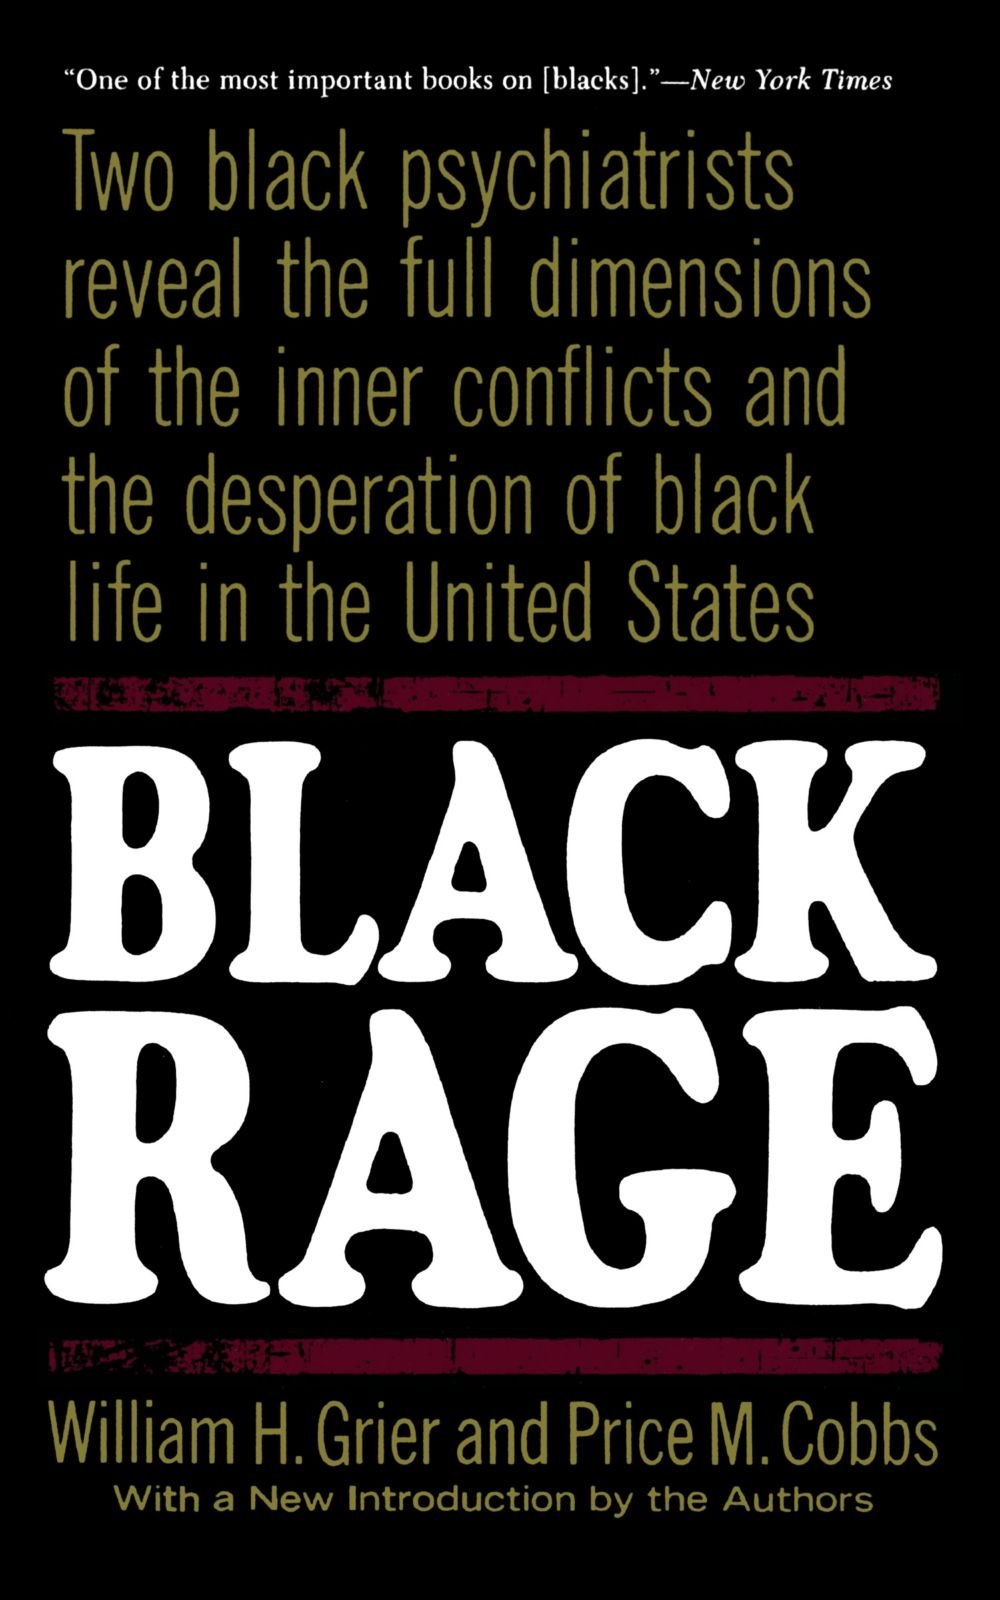 Black Rage: Two Black Psychiatrists Reveal the Full Dimensions of the Inner Conflicts and the Desperation of Black Life in the United States